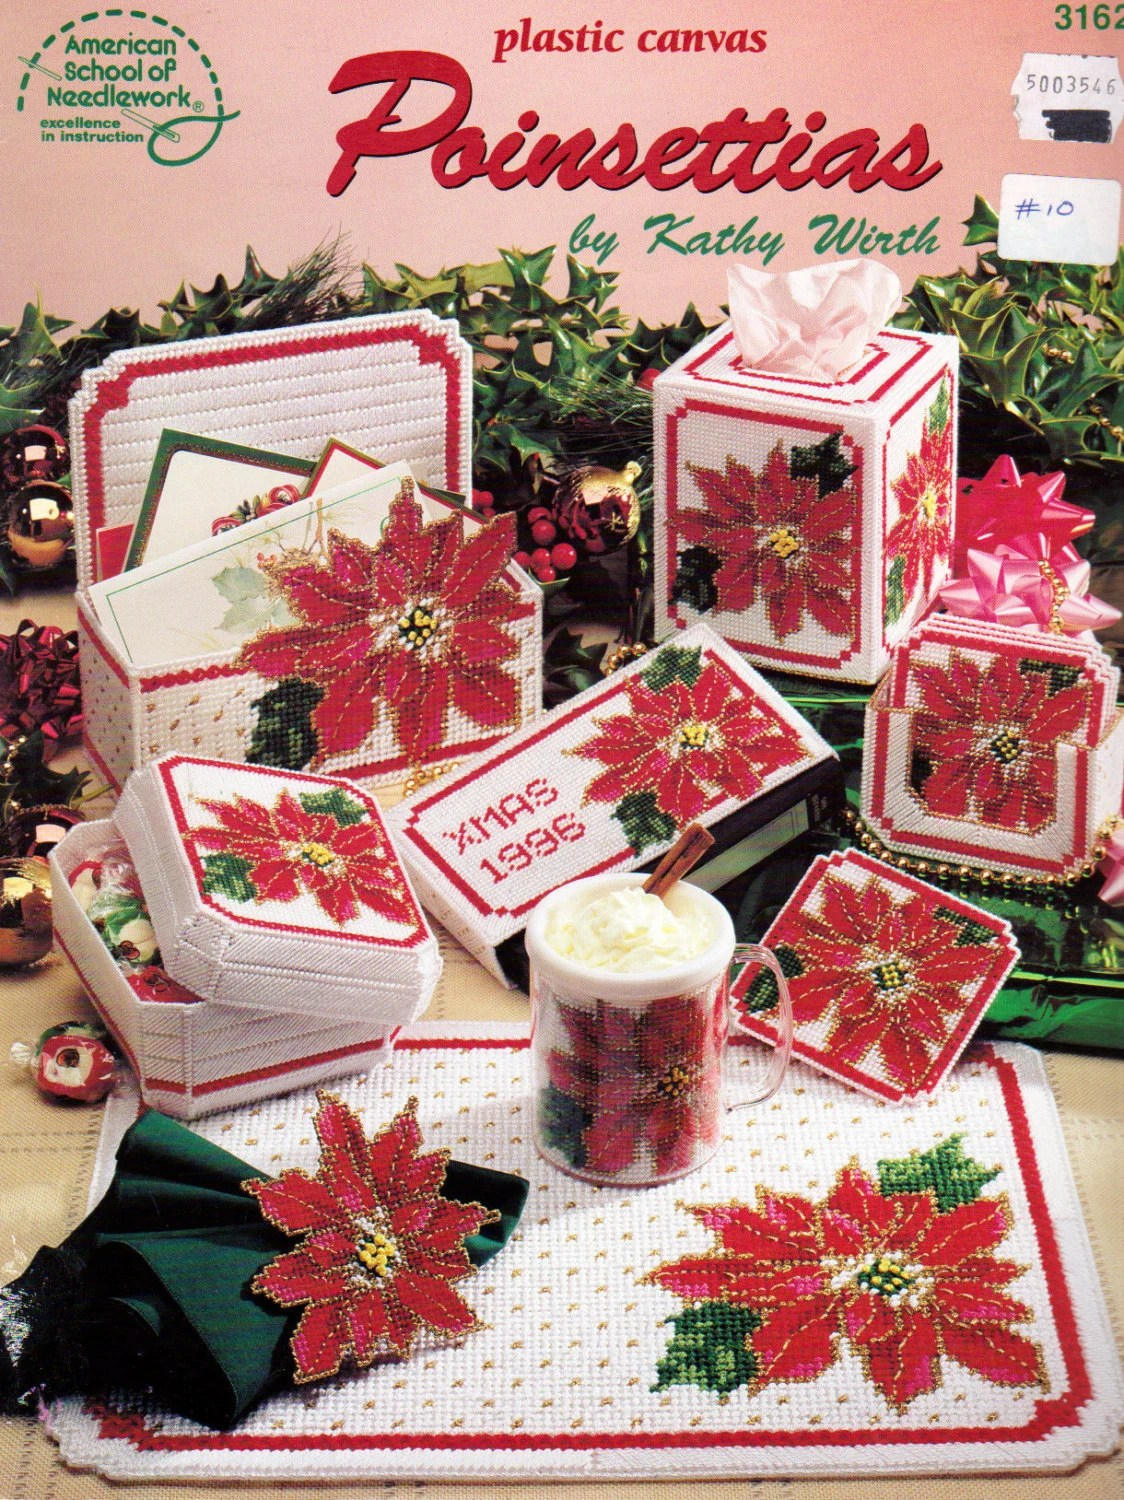 Pointsettias Plastic Canvas Patterns By Kathy Wirth Coaster